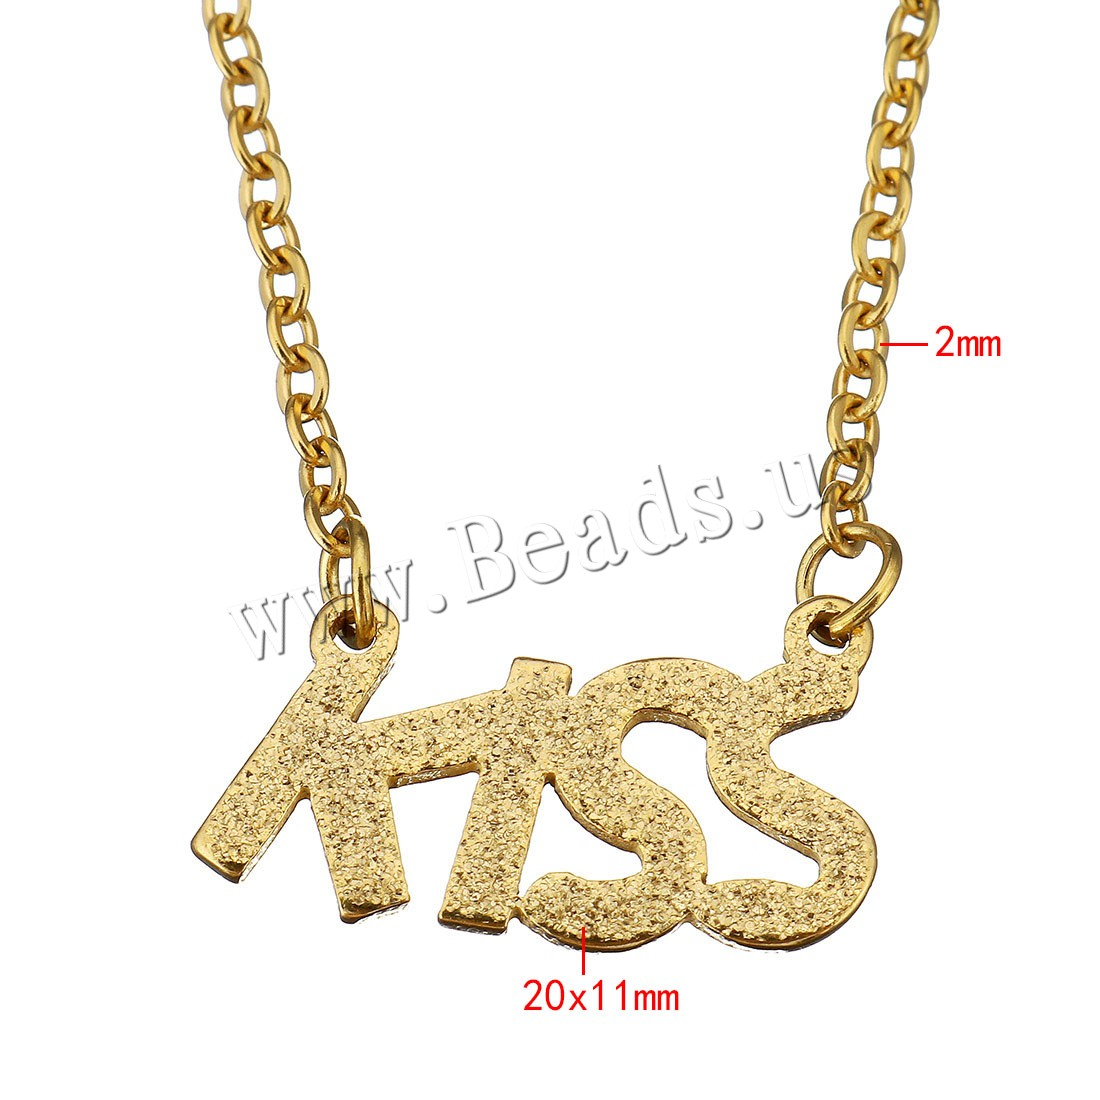 Buy Unisex Necklace Stainless Steel Letter word kiss gold color plated oval chain & stardust 20x11mm 2mm Sold Per Approx 18 Inch Strand